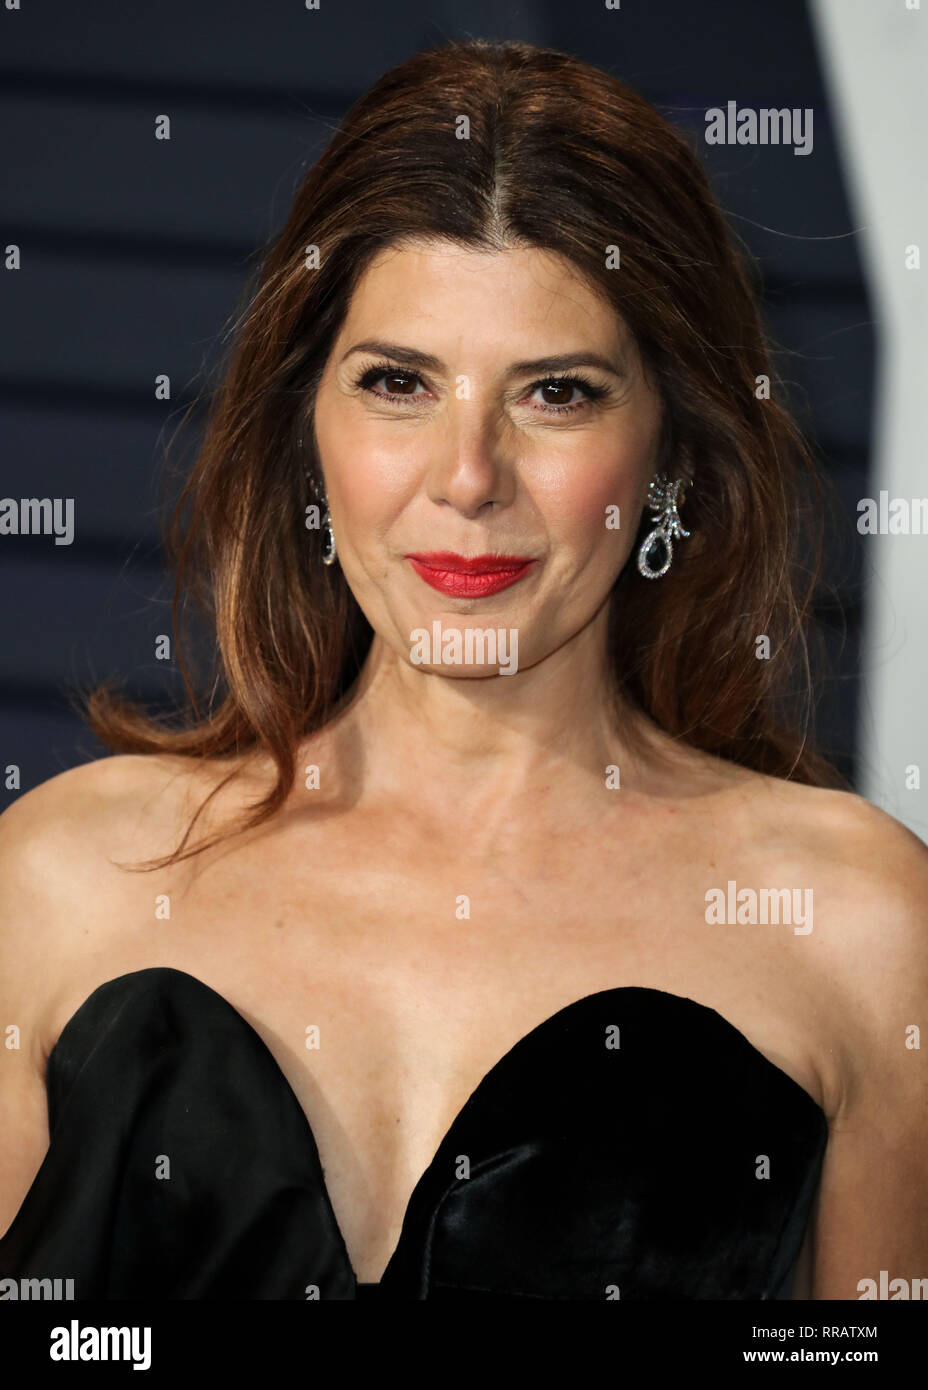 BEVERLY HILLS, LOS ANGELES, CA, USA - FEBRUARY 24: Marisa Tomei arrives at the 2019 Vanity Fair Oscar Party held at the Wallis Annenberg Center for the Performing Arts on February 24, 2019 in Beverly Hills, Los Angeles, California, United States. (Photo by Xavier Collin/Image Press Agency) - Stock Image